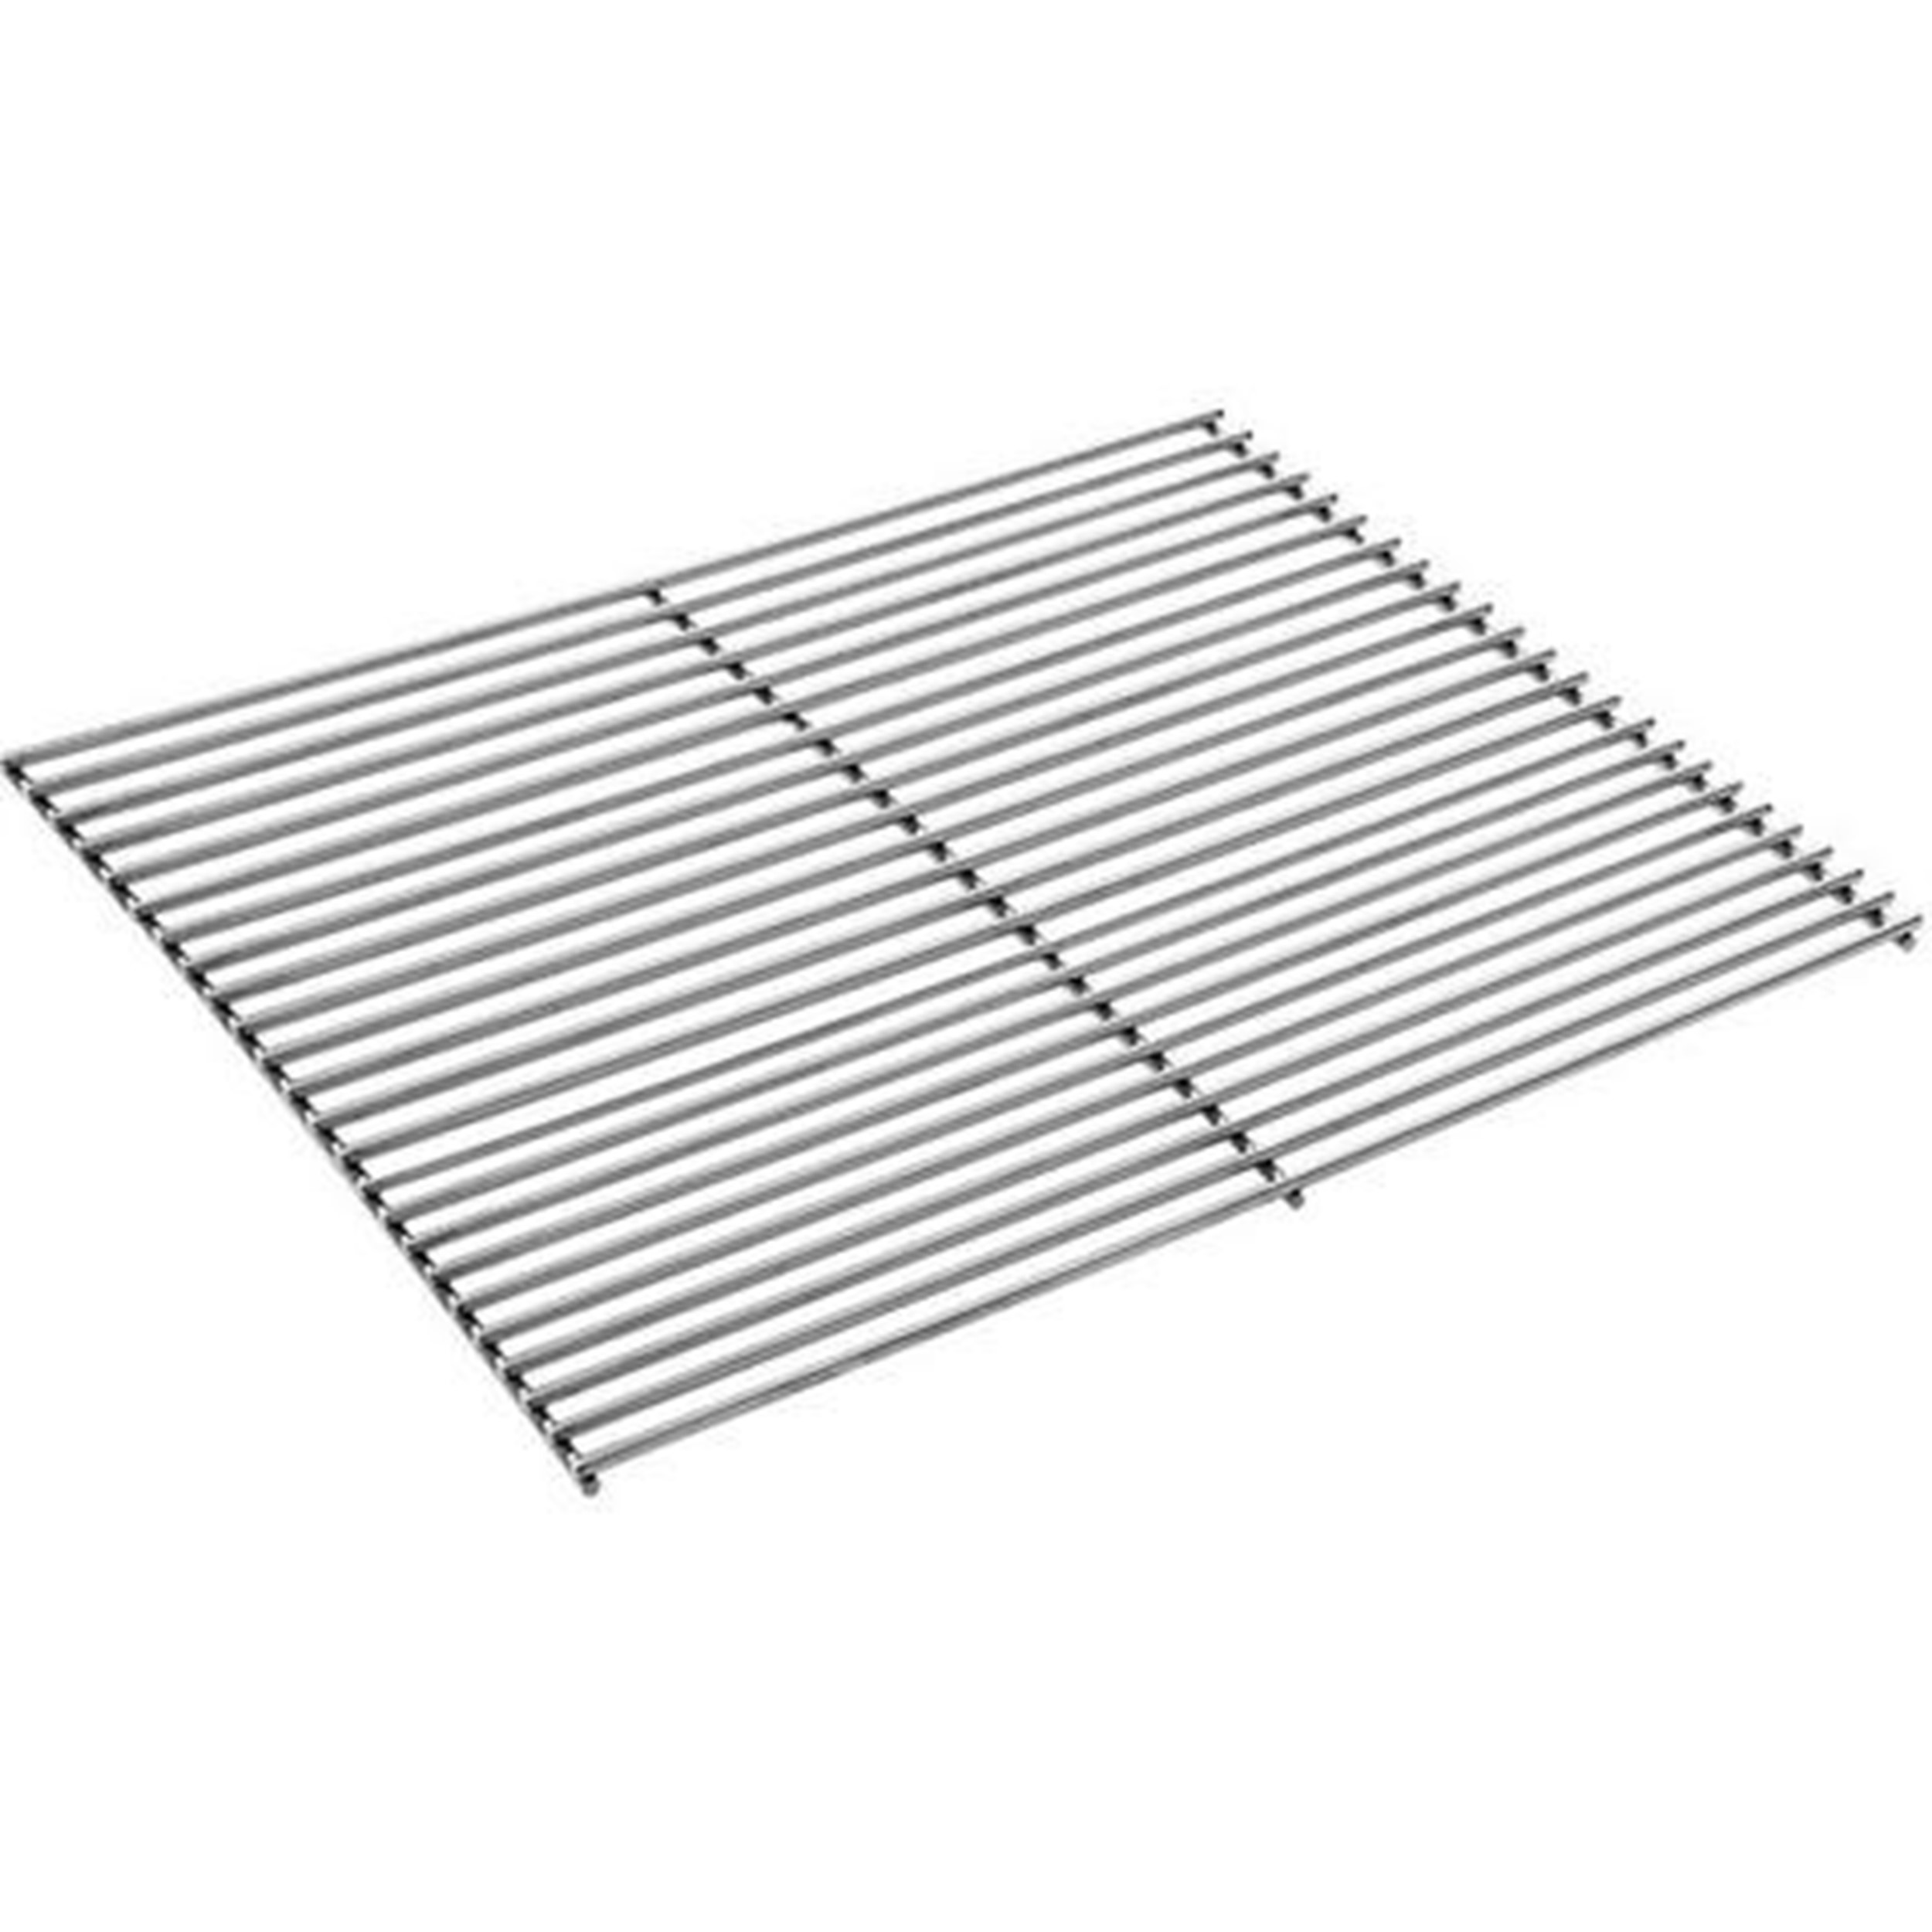 Picture of Steel Cooking Grill